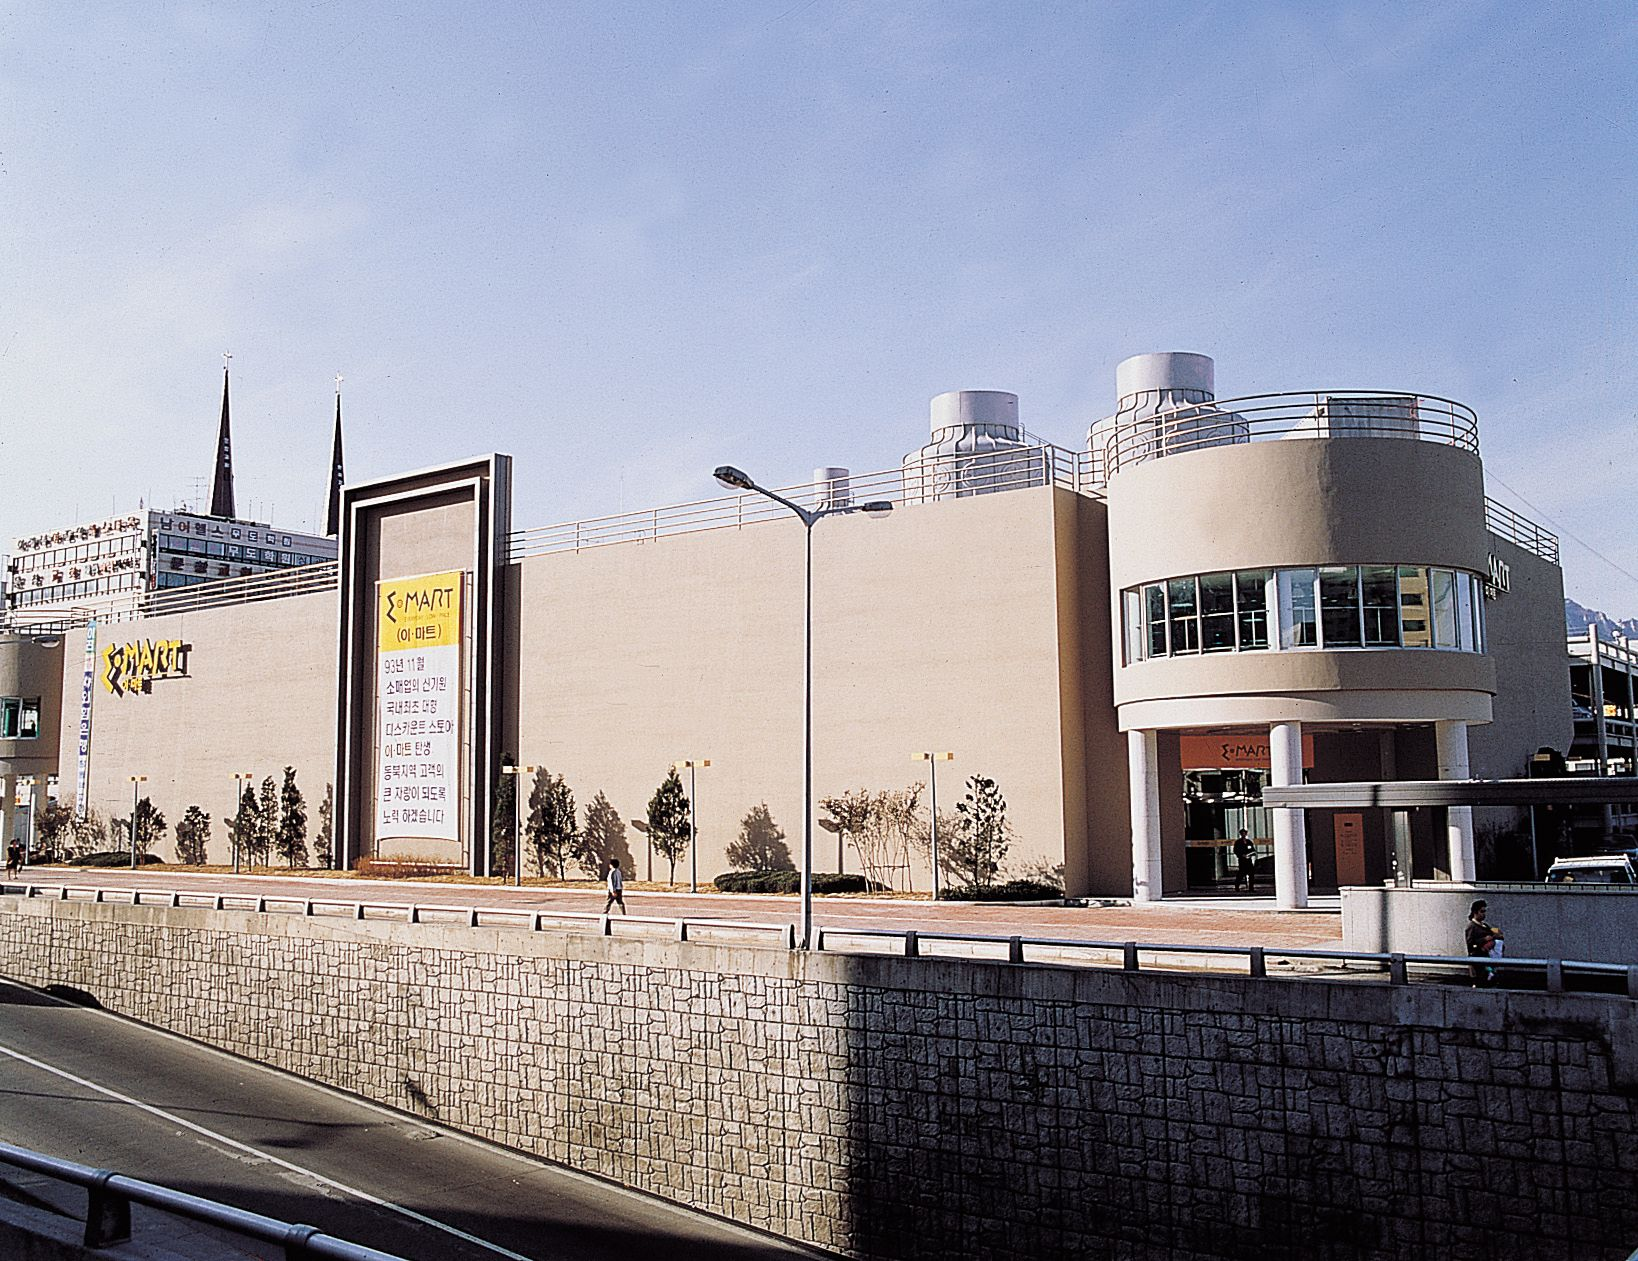 [emart changdong] the first hypermarket in korea